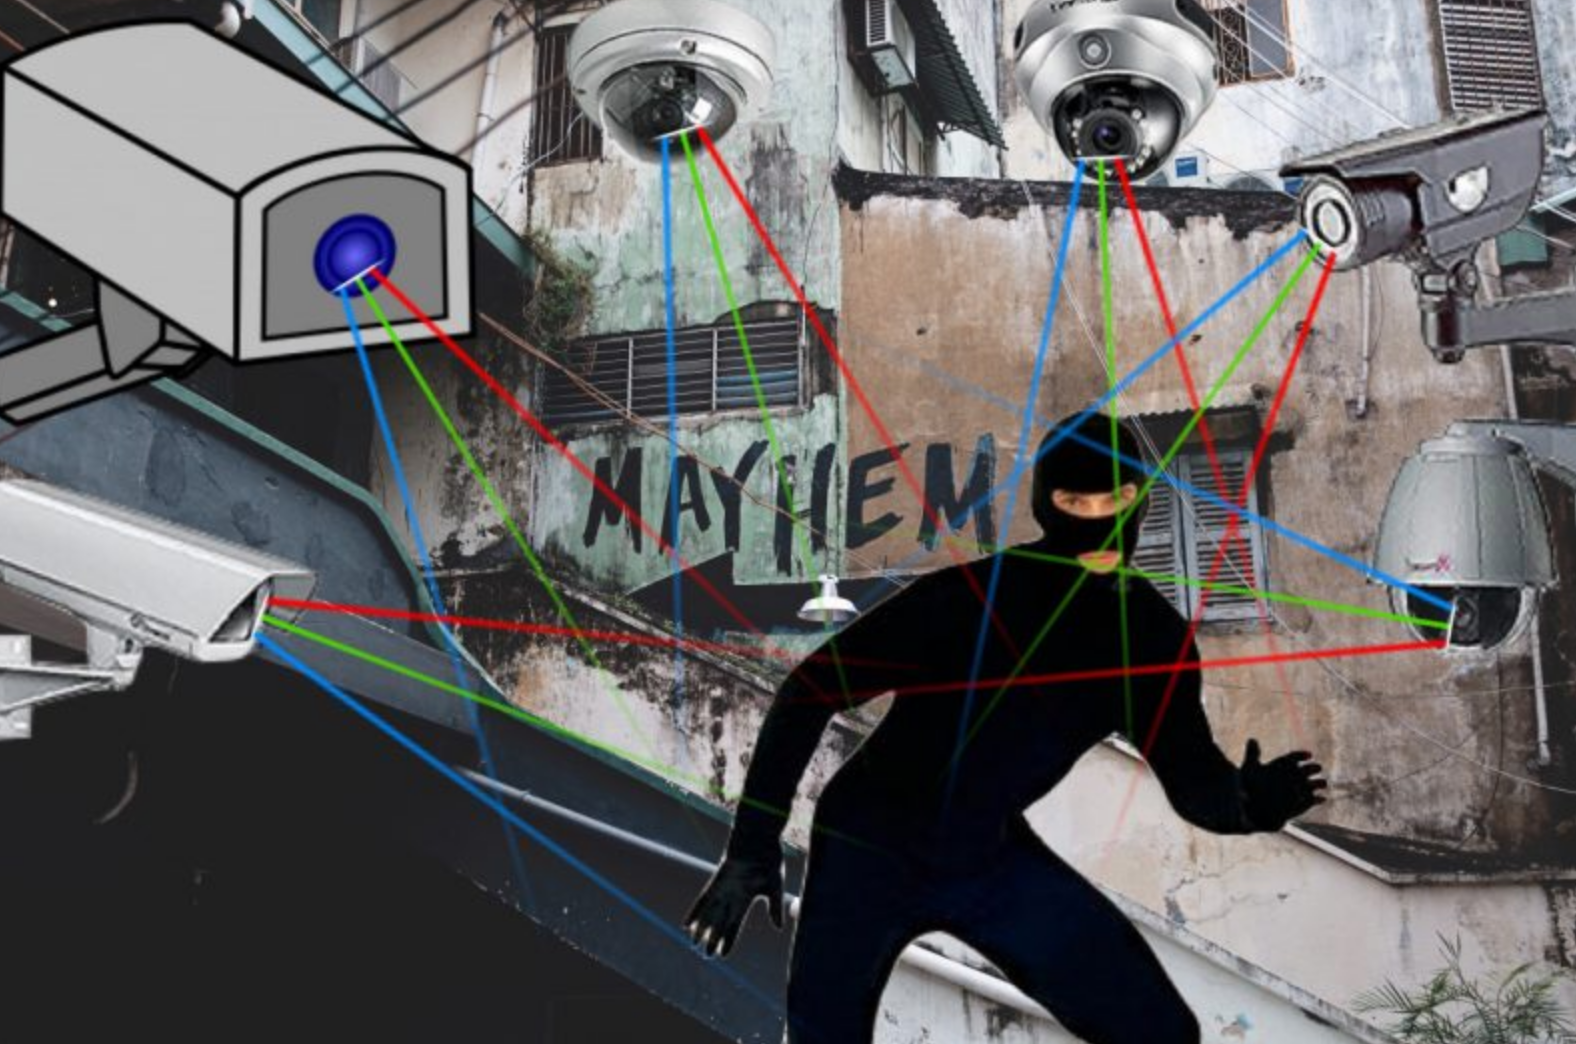 Bockchain-Based Surveillance Camera Technology Detects Crime In Real-Time